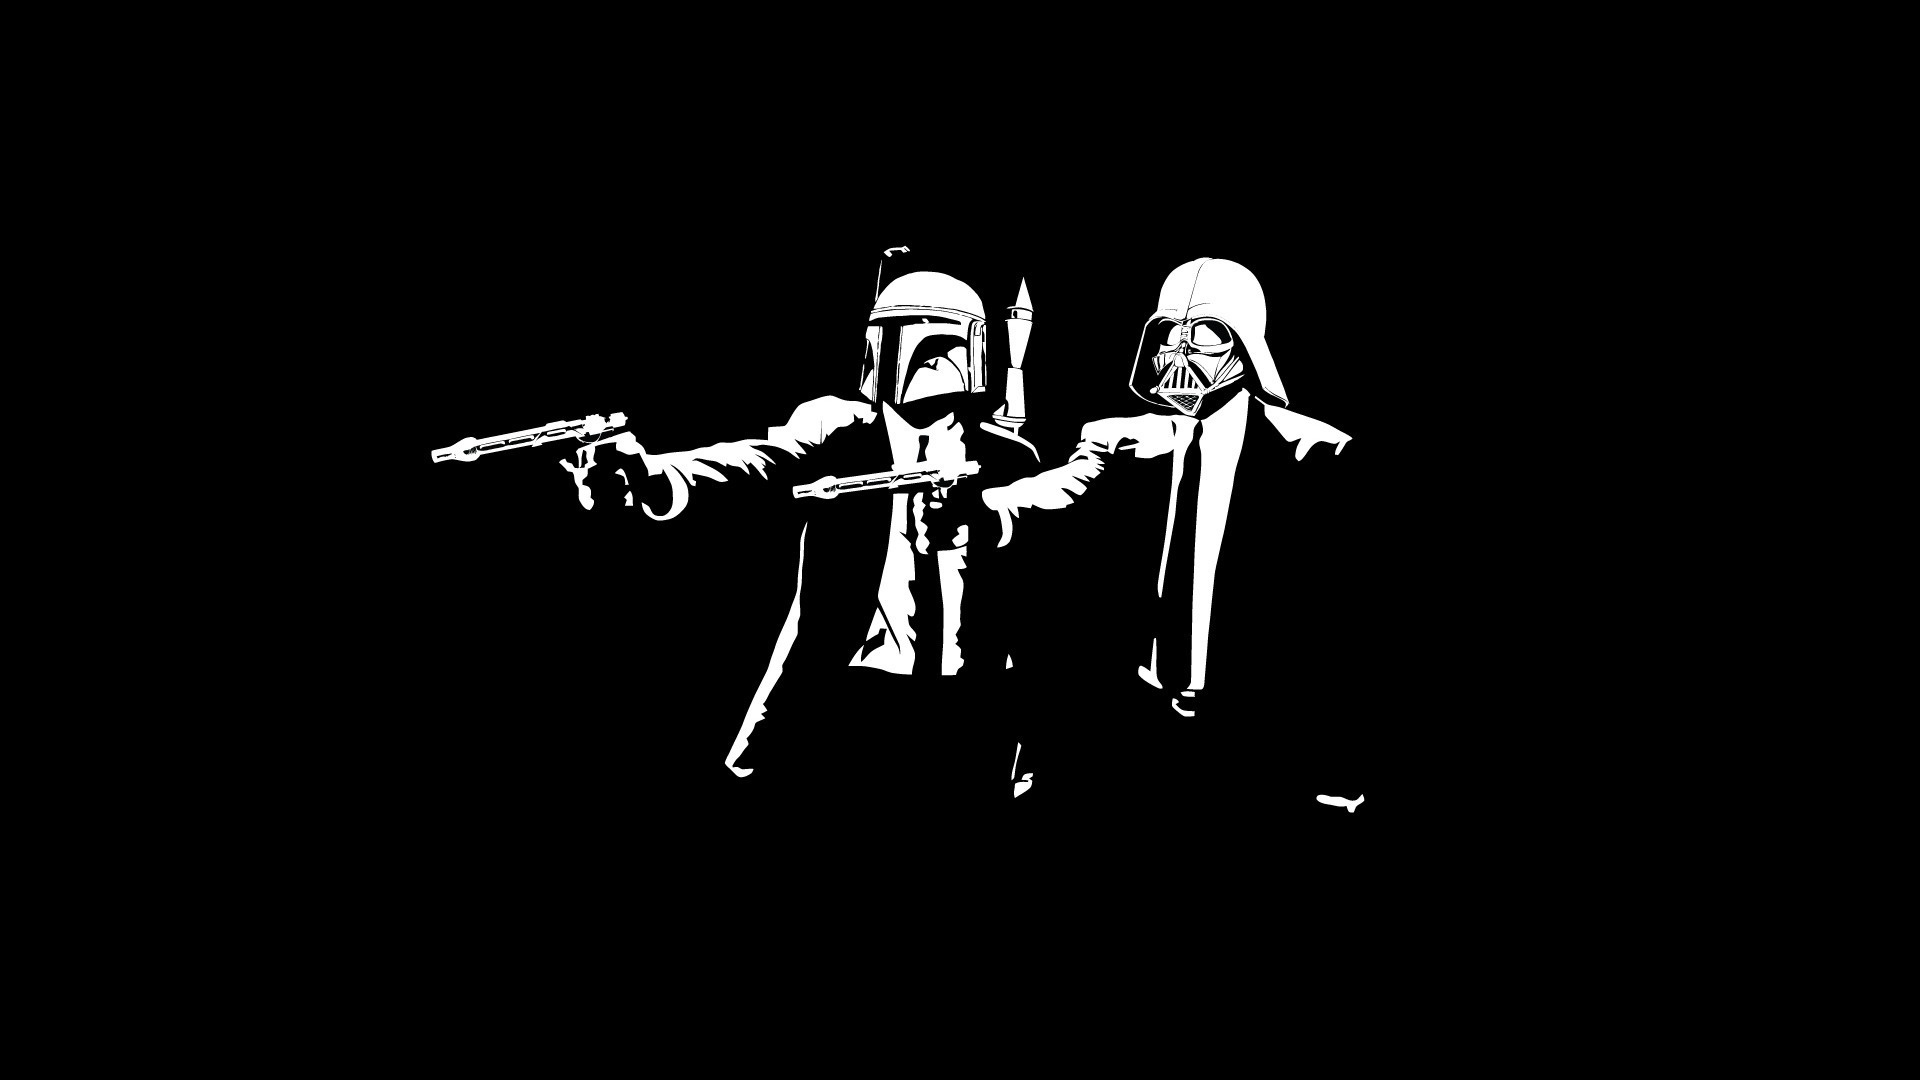 Star-wars-darth-vader-gun-wallpaper-desktop-simple-